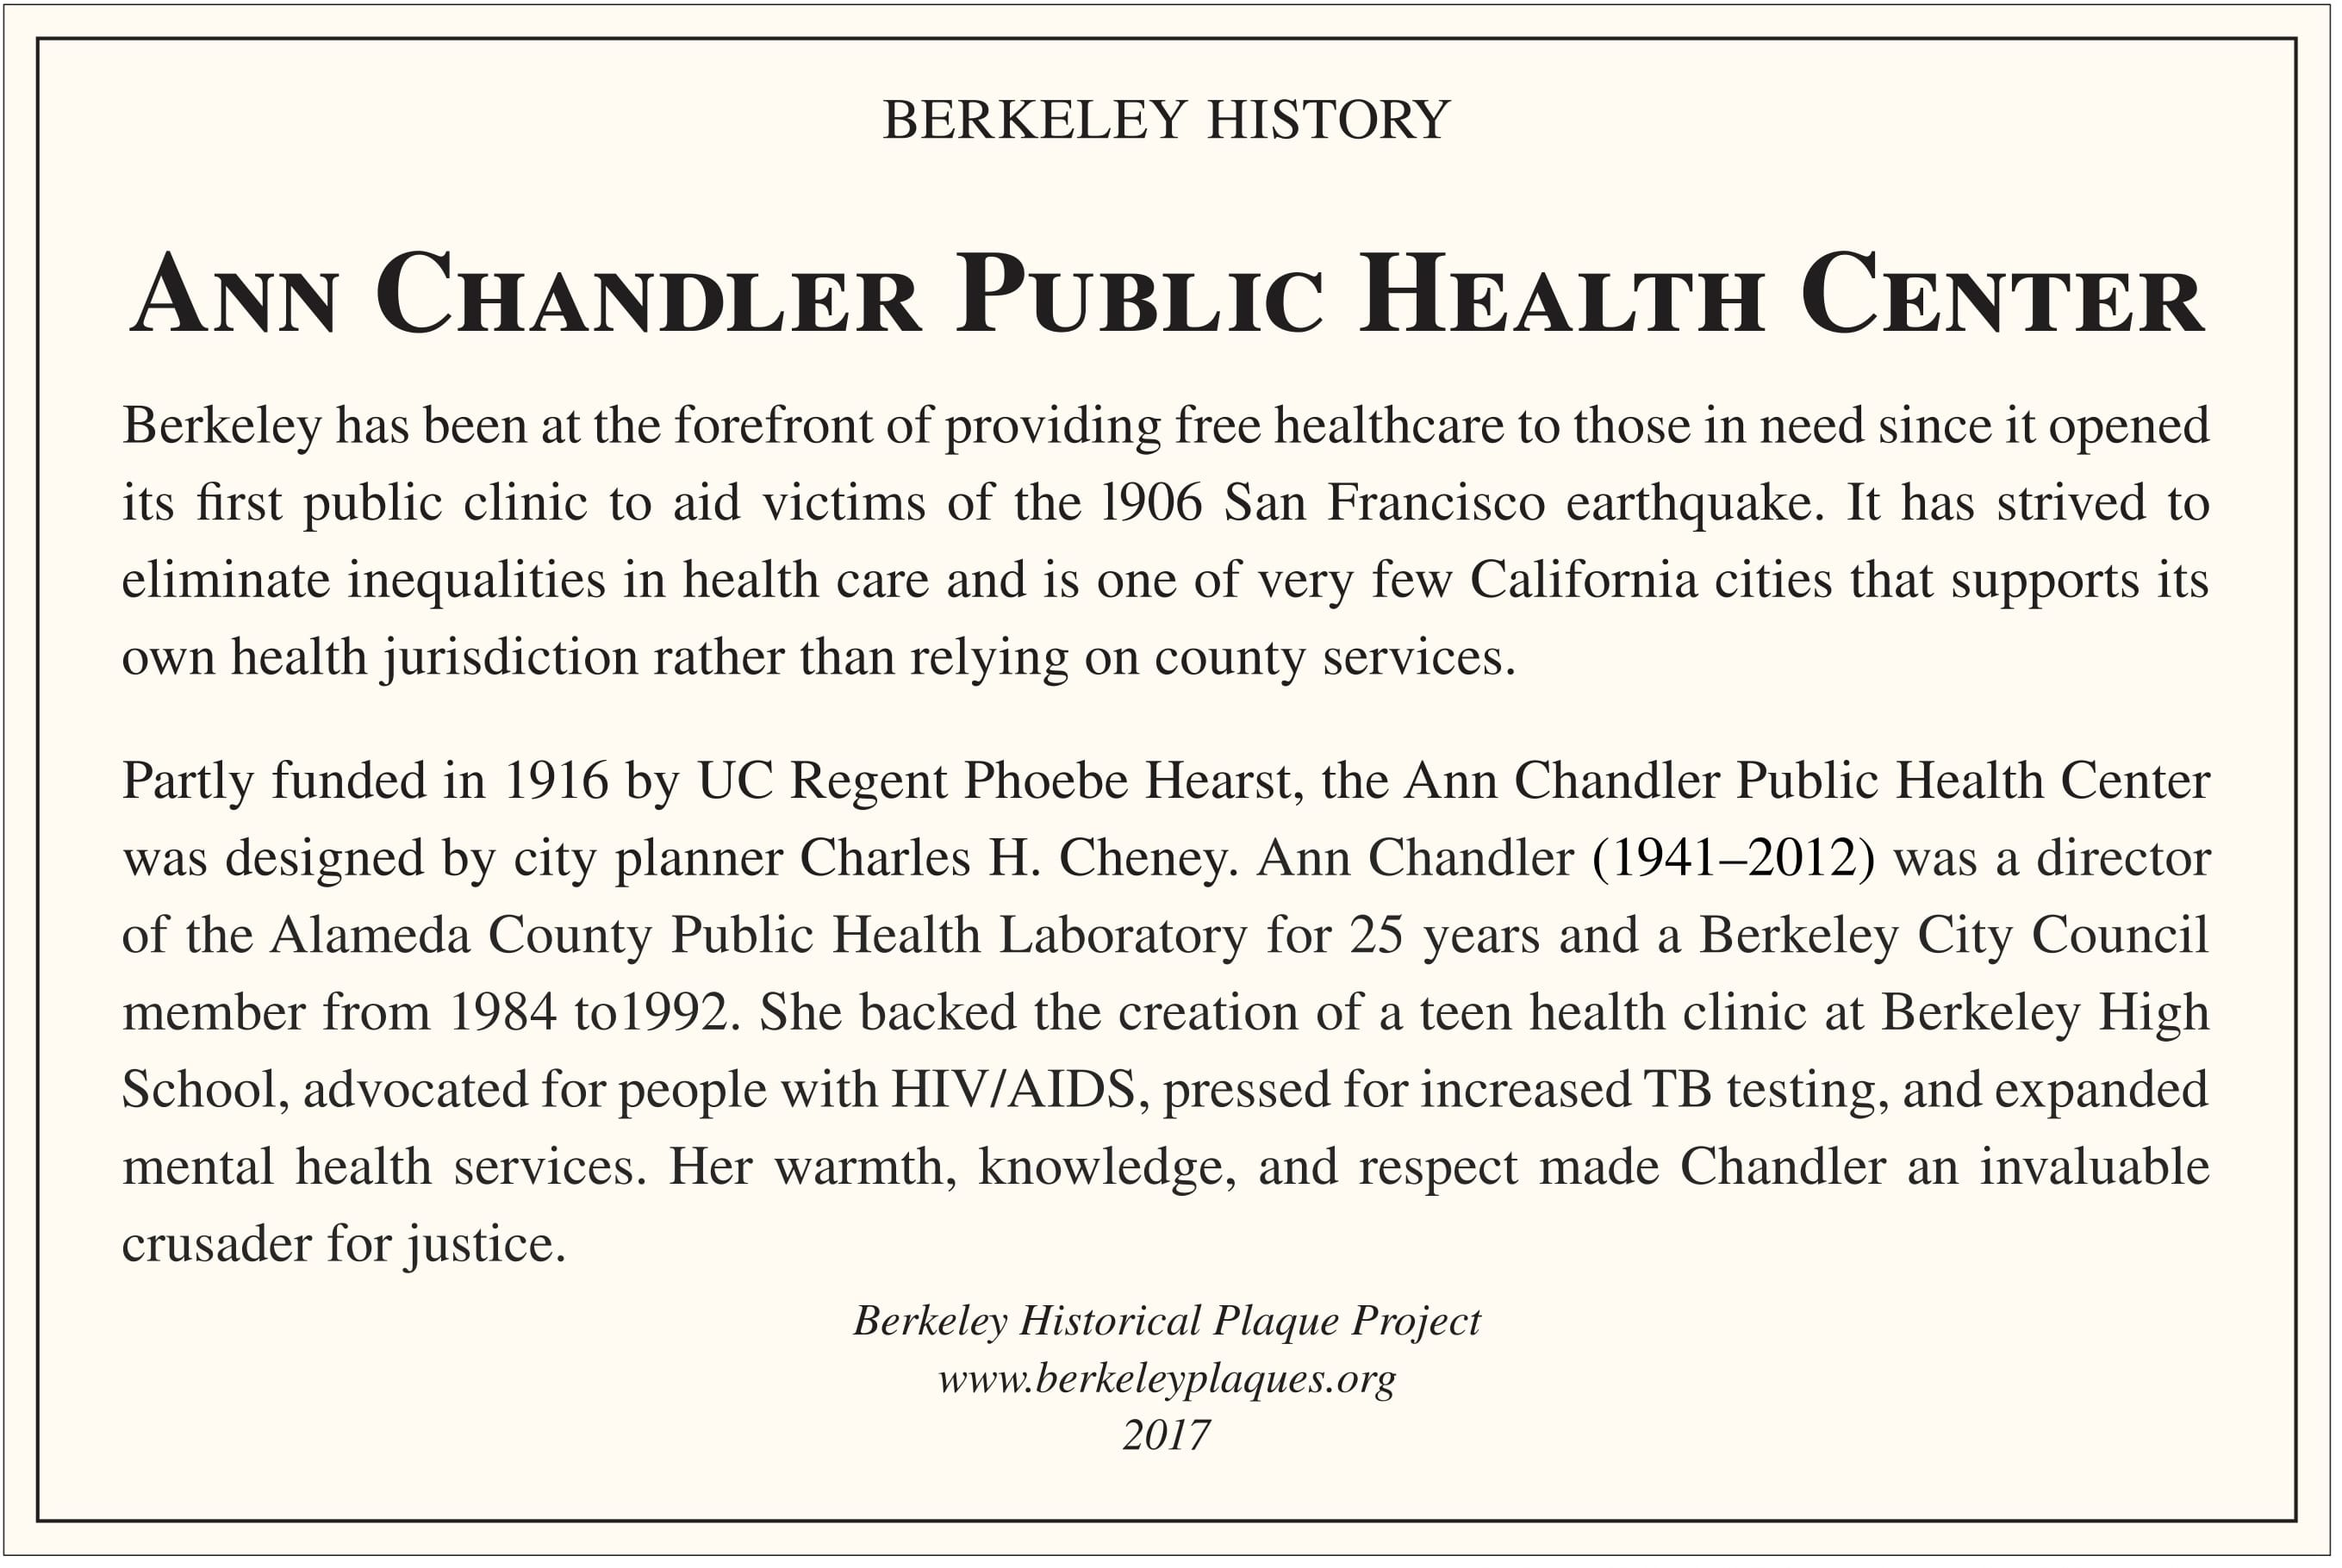 Berkeley Historical Plaque Project – Ann Chandler Public